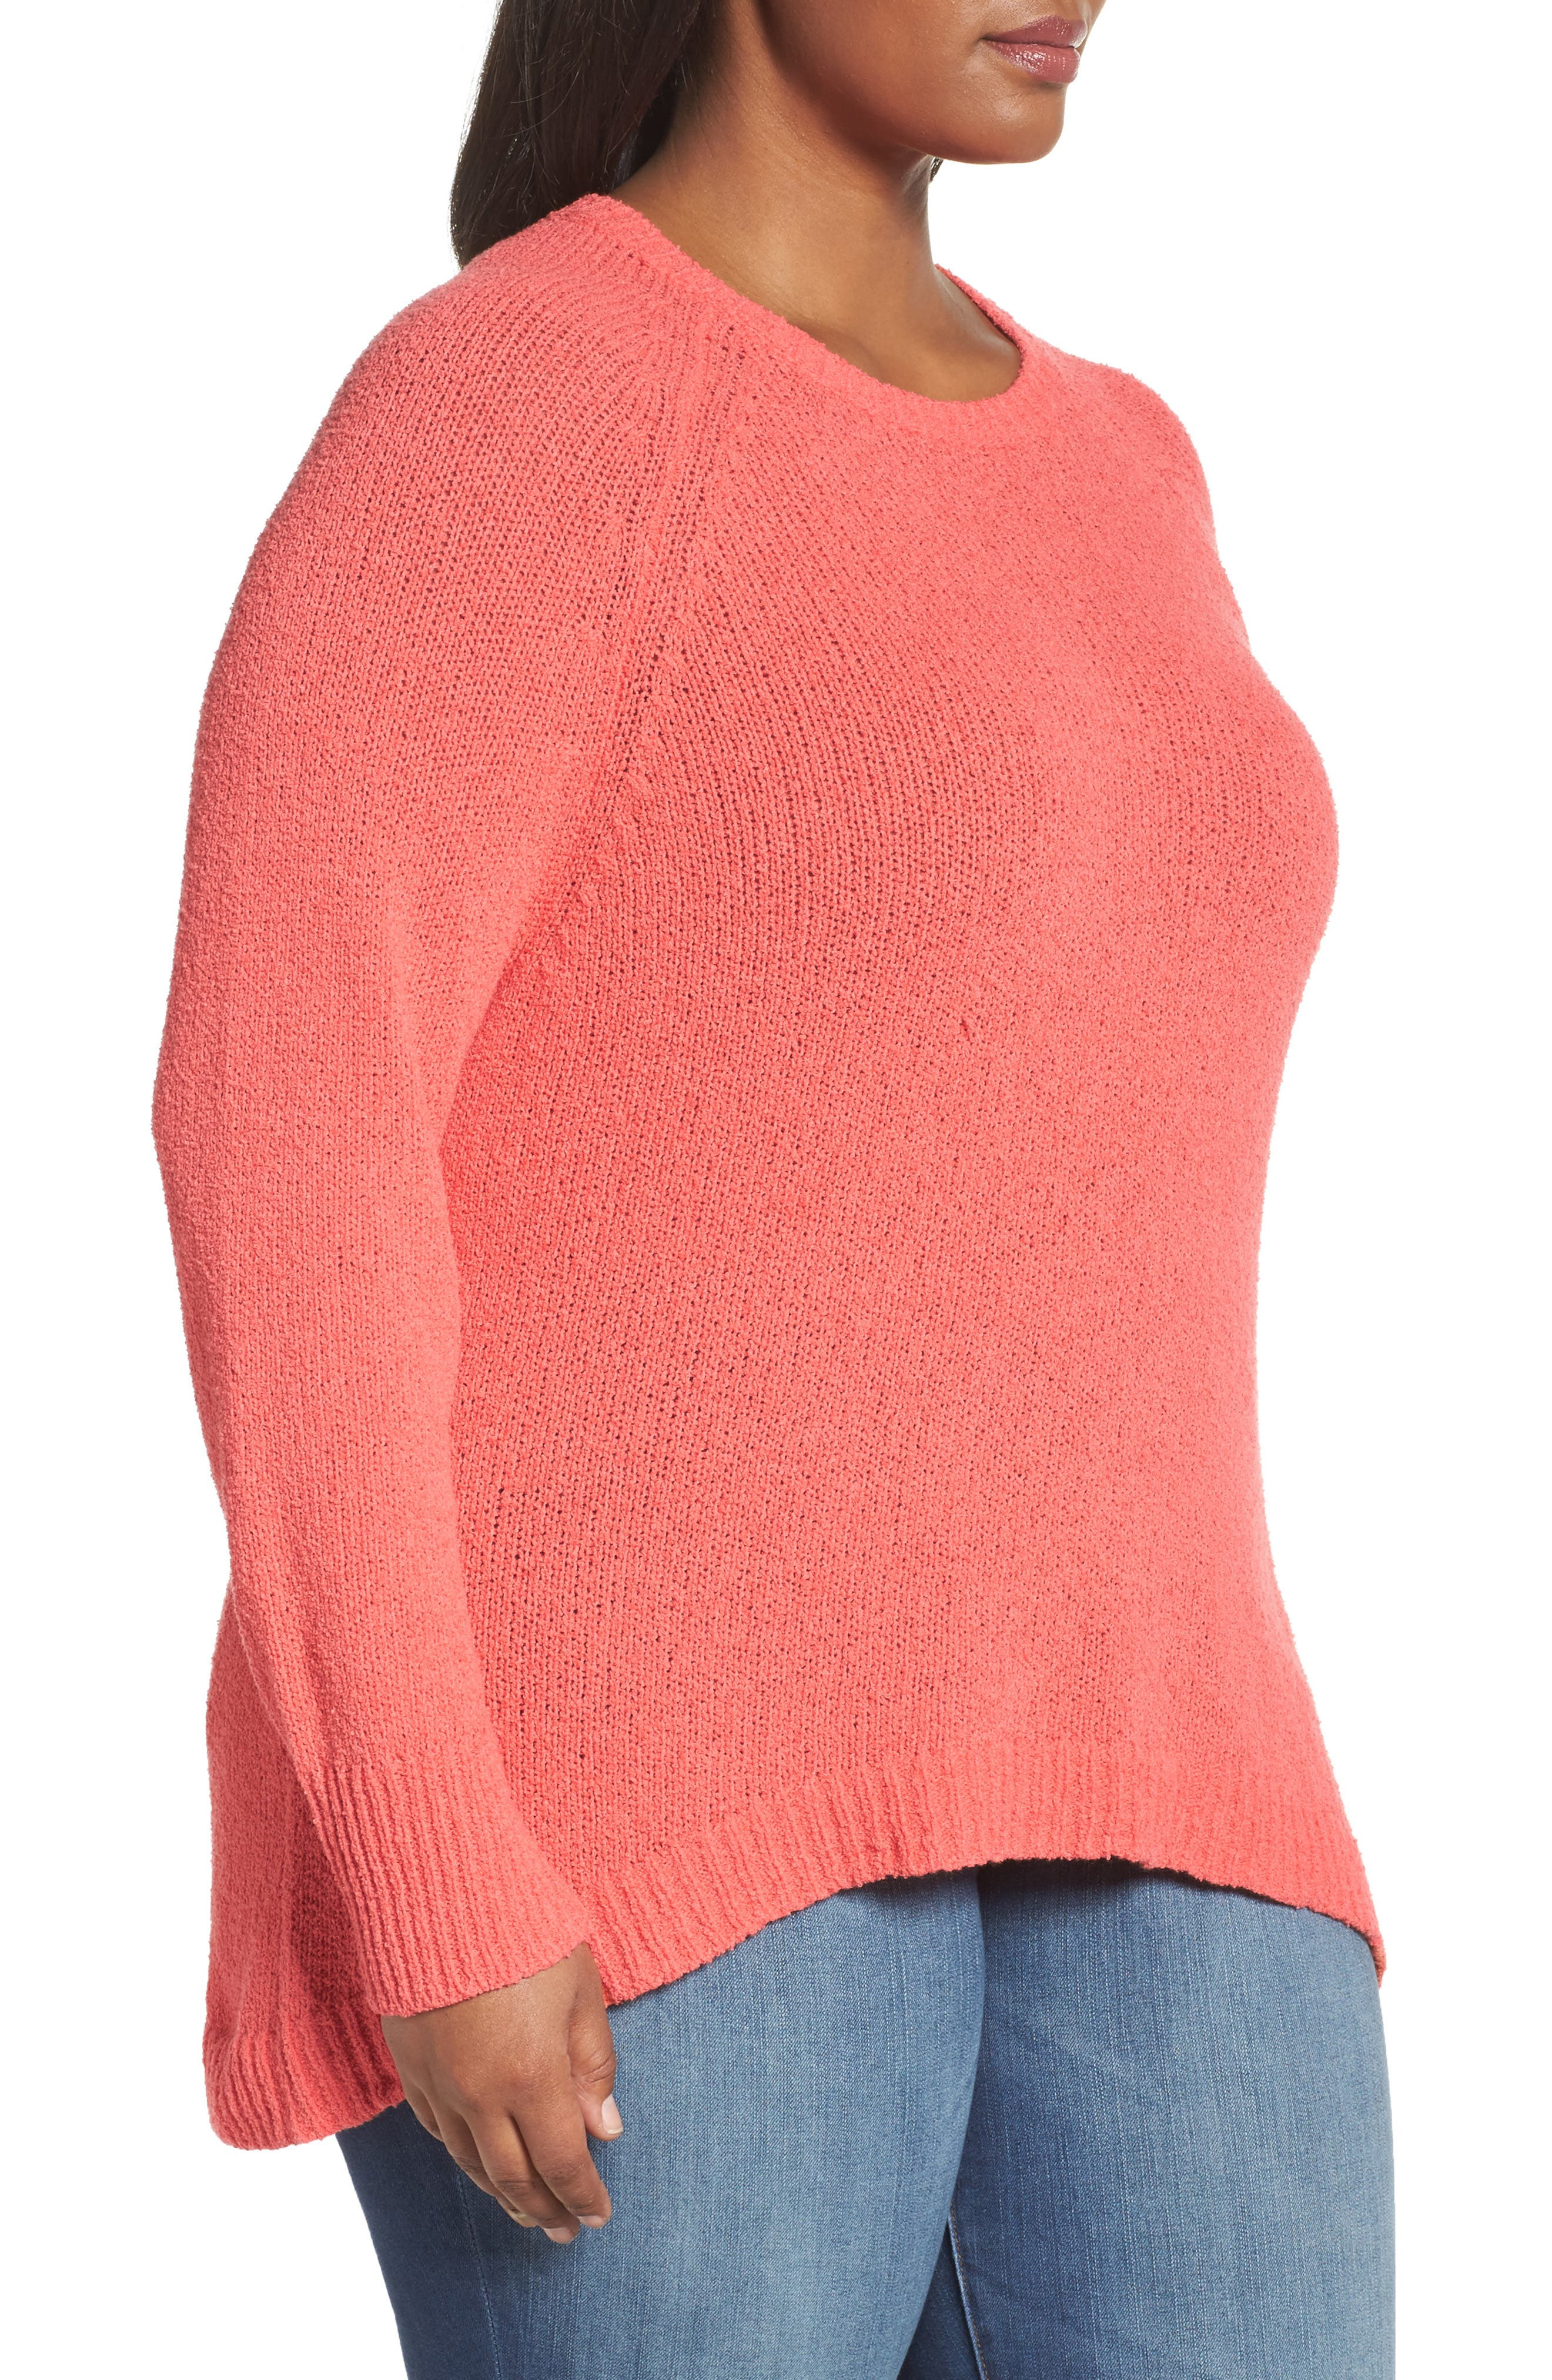 Relaxed Crewneck Sweater,                             Alternate thumbnail 4, color,                             Coral Sea